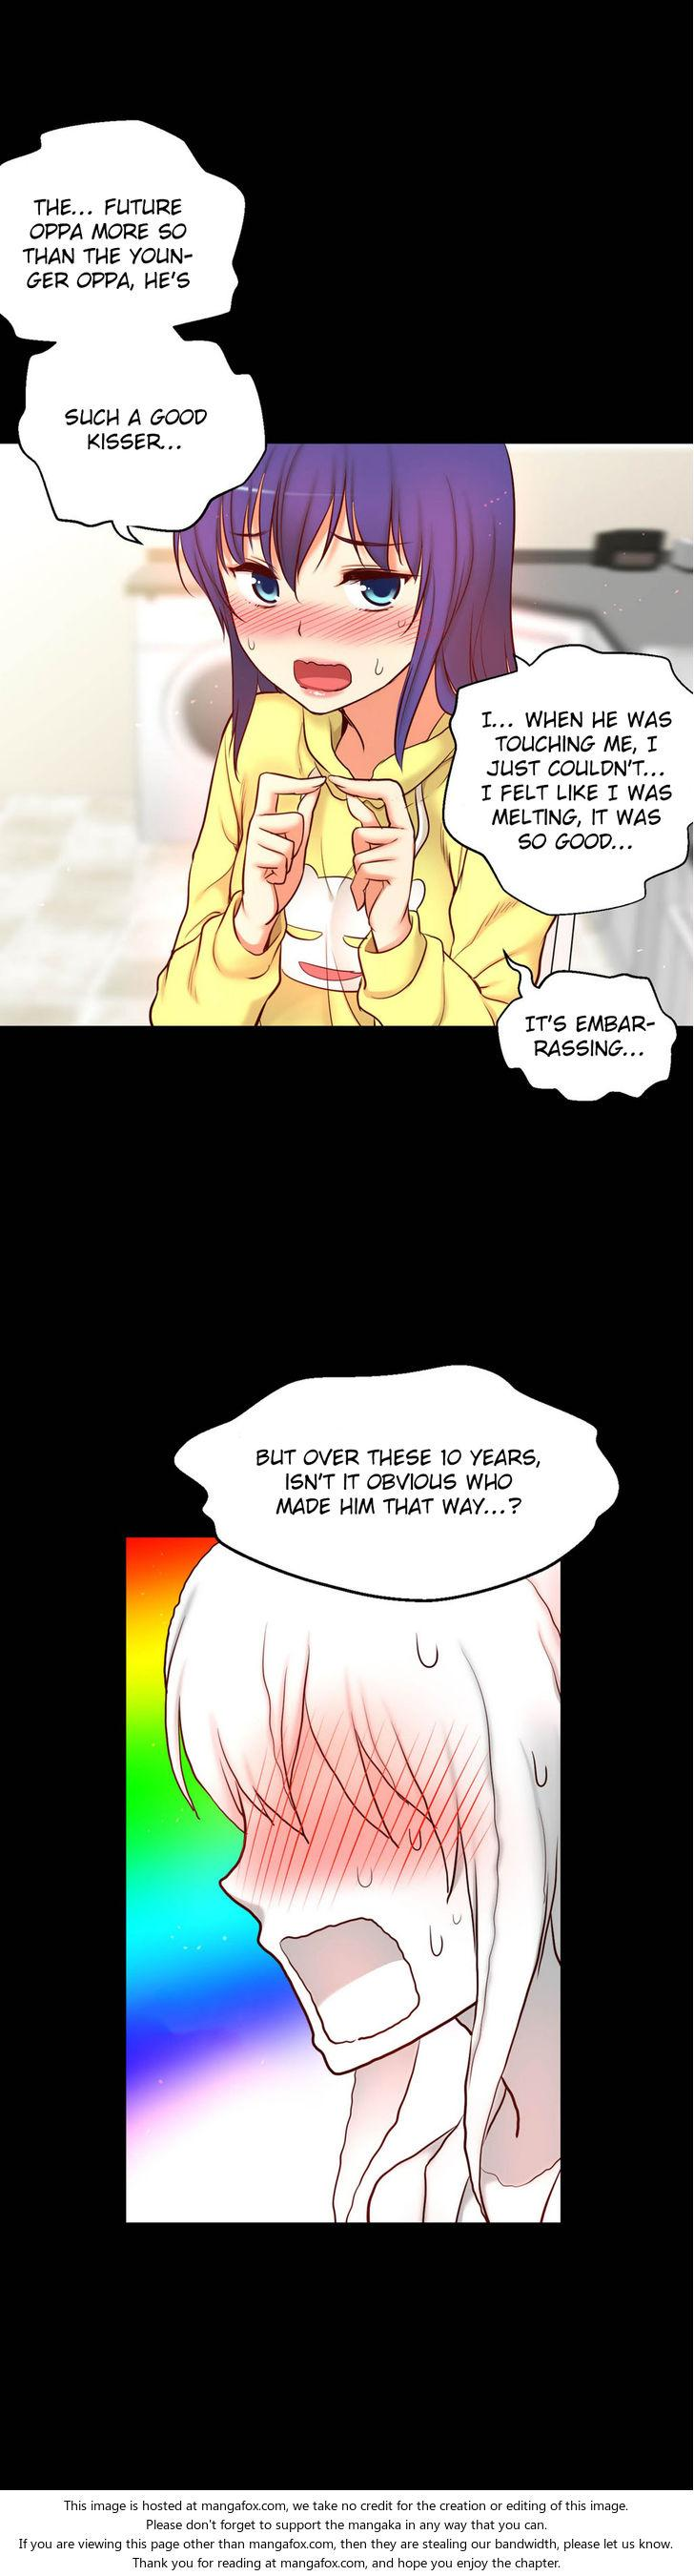 [Donggul Gom] She is Young (English) Part 1/2 1574